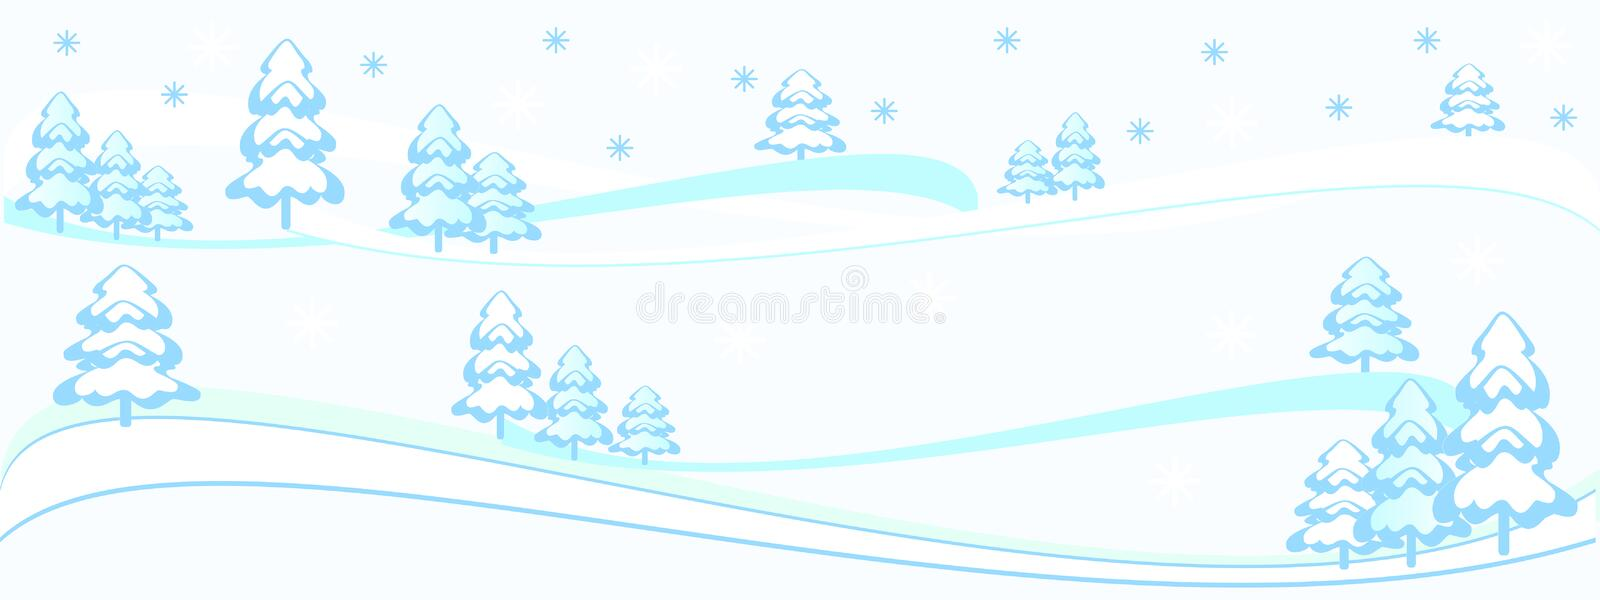 winter illustration backdrop white, light blue, turquoise, snowy trees forest & snowflakes, light, transparent. royalty free illustration